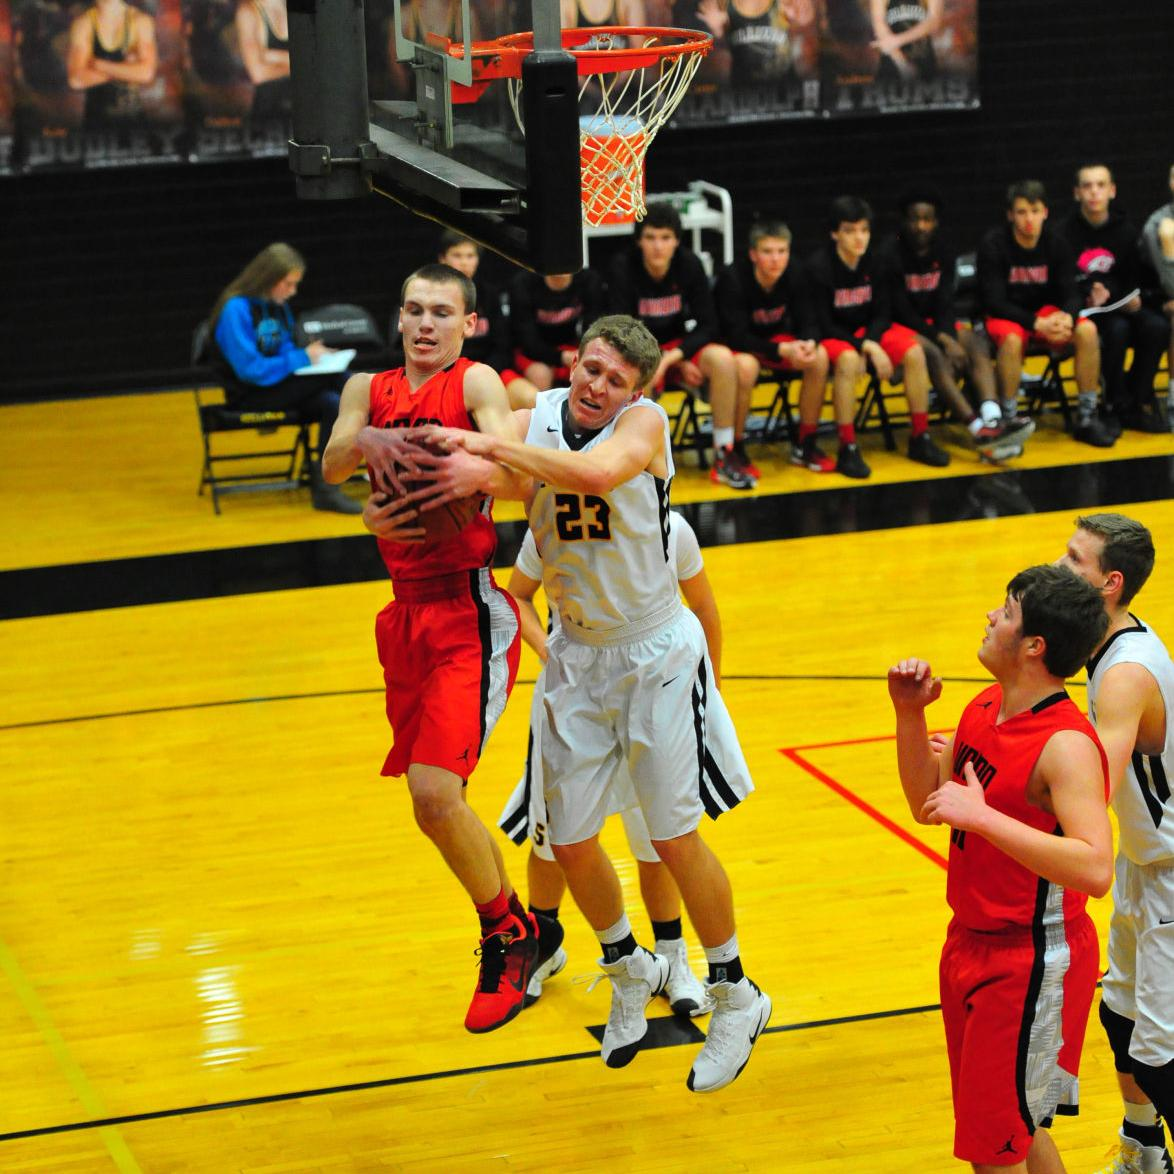 Boys Basketball — Union at Sullivan